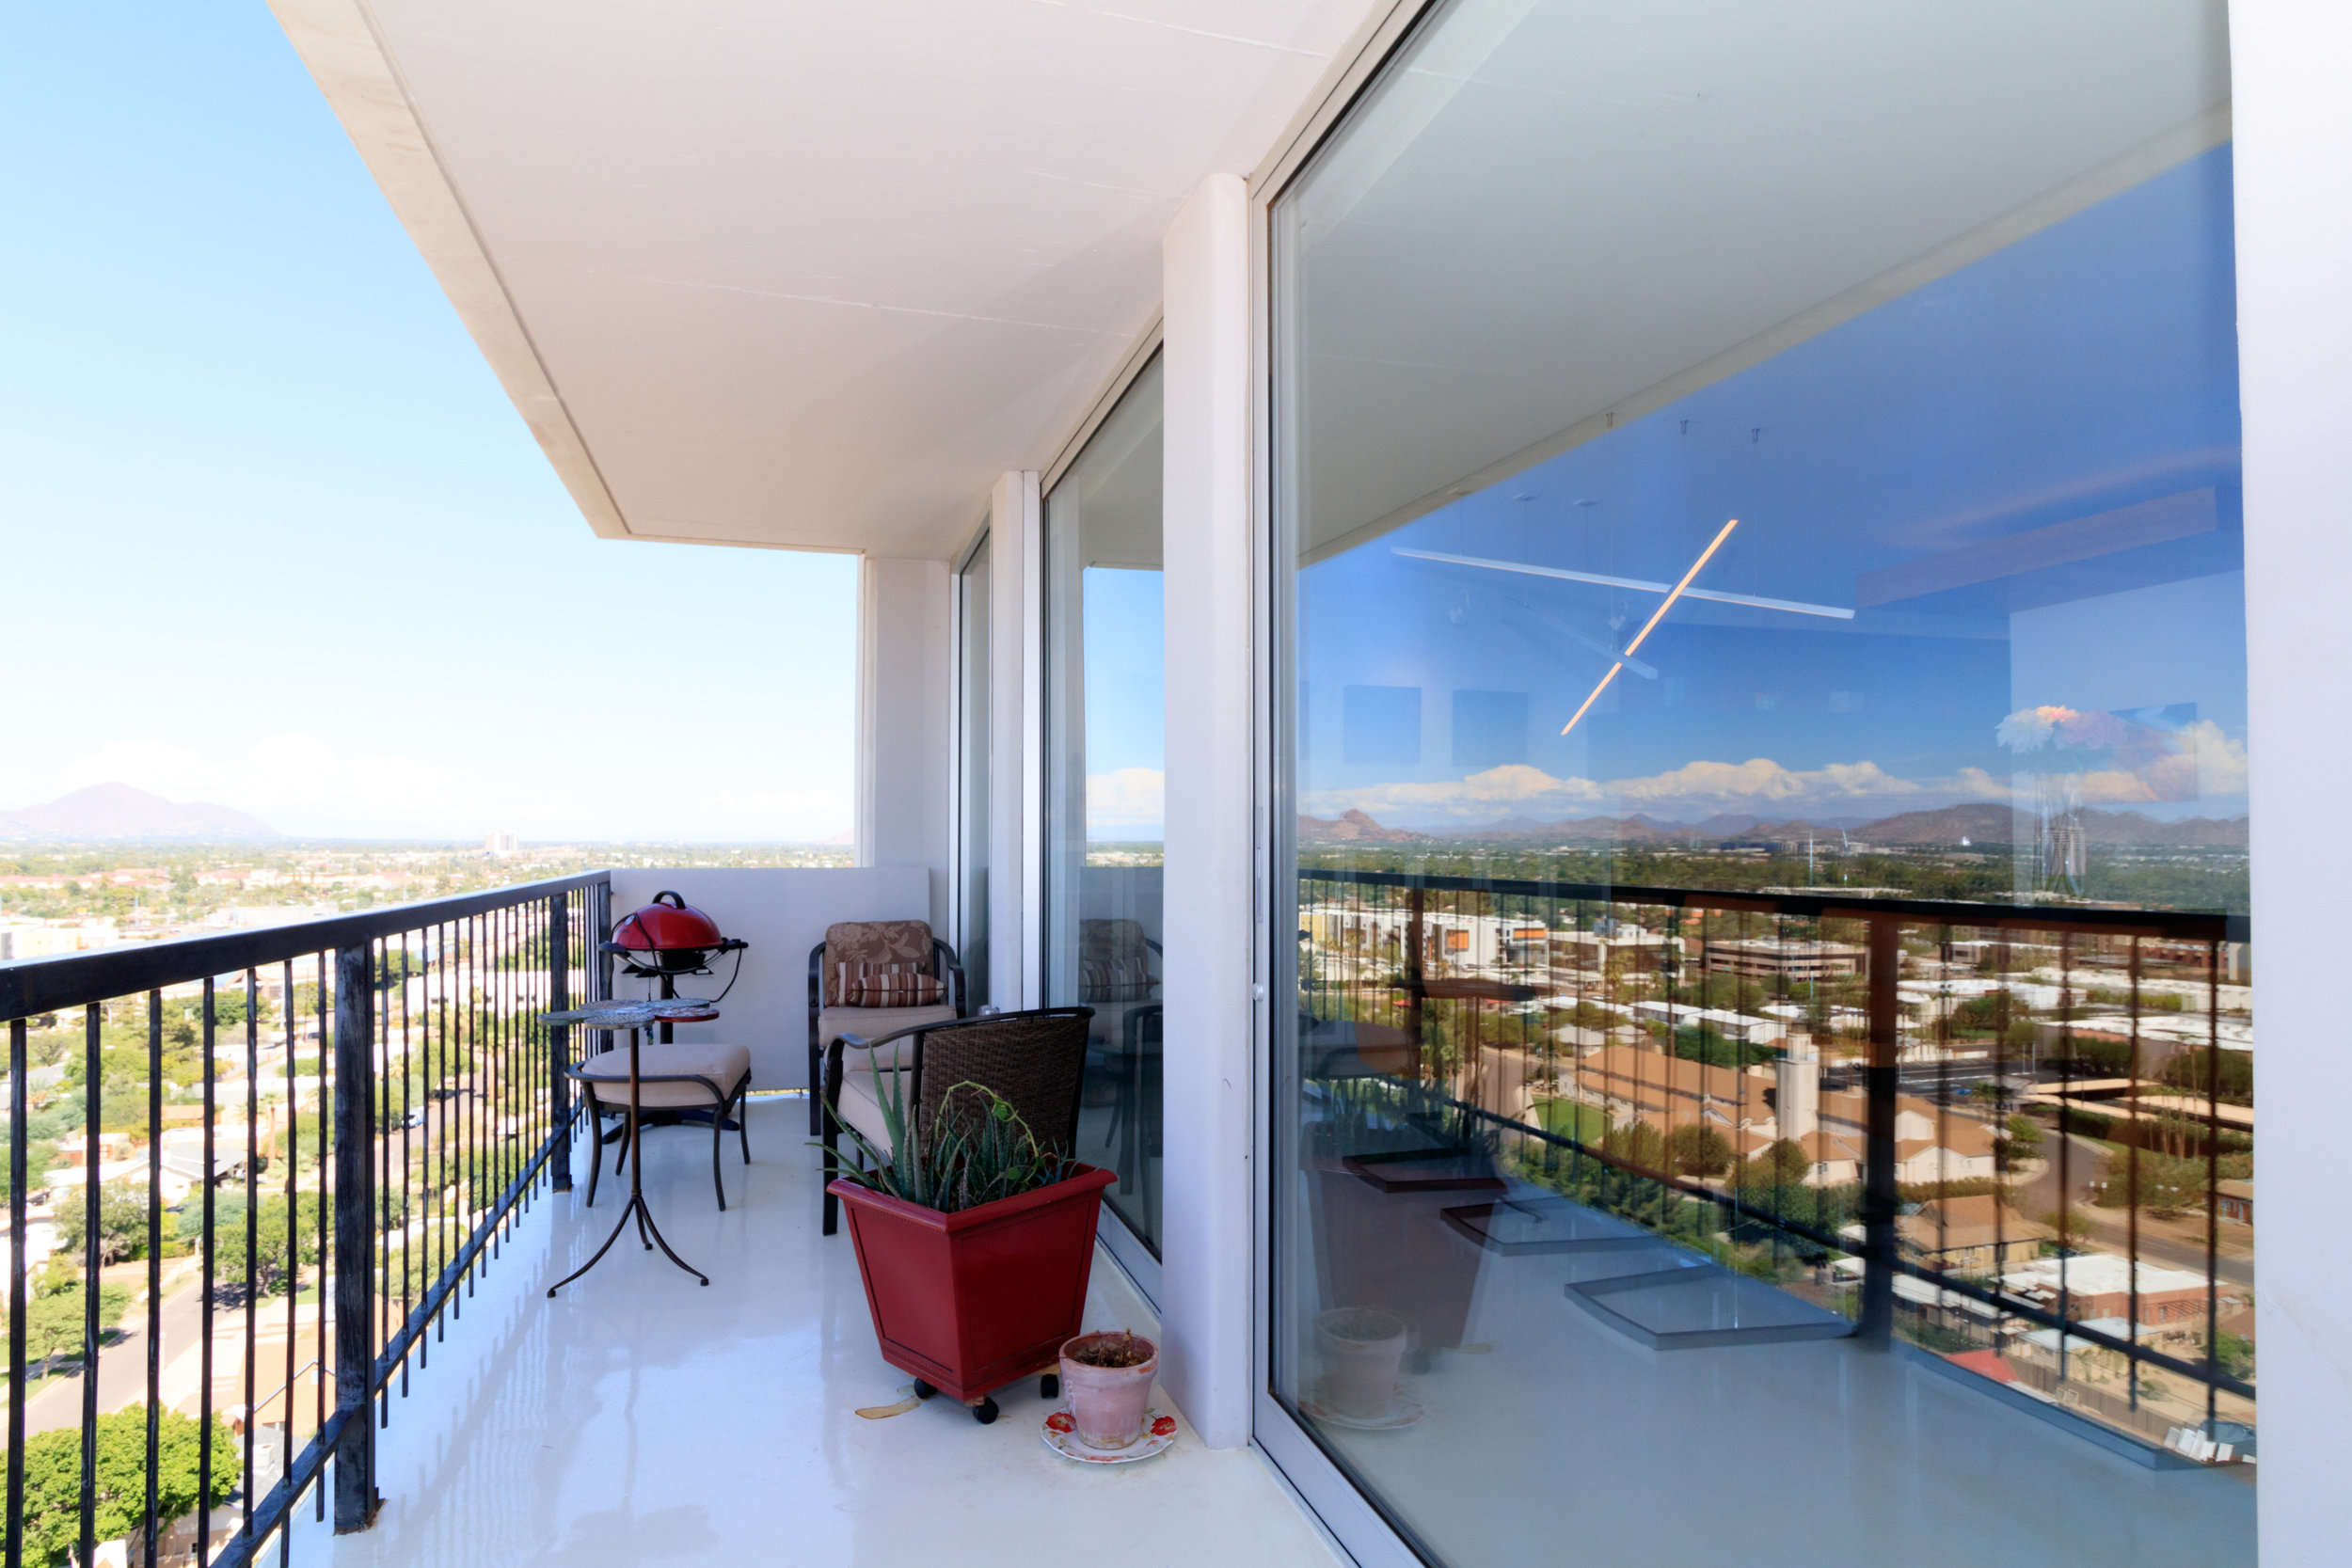 Regency on Central - This 22-story Central Avenue high-rise offers spectacular views of the entire valley. Built in 1964, Regency is in the heart of Midtown.